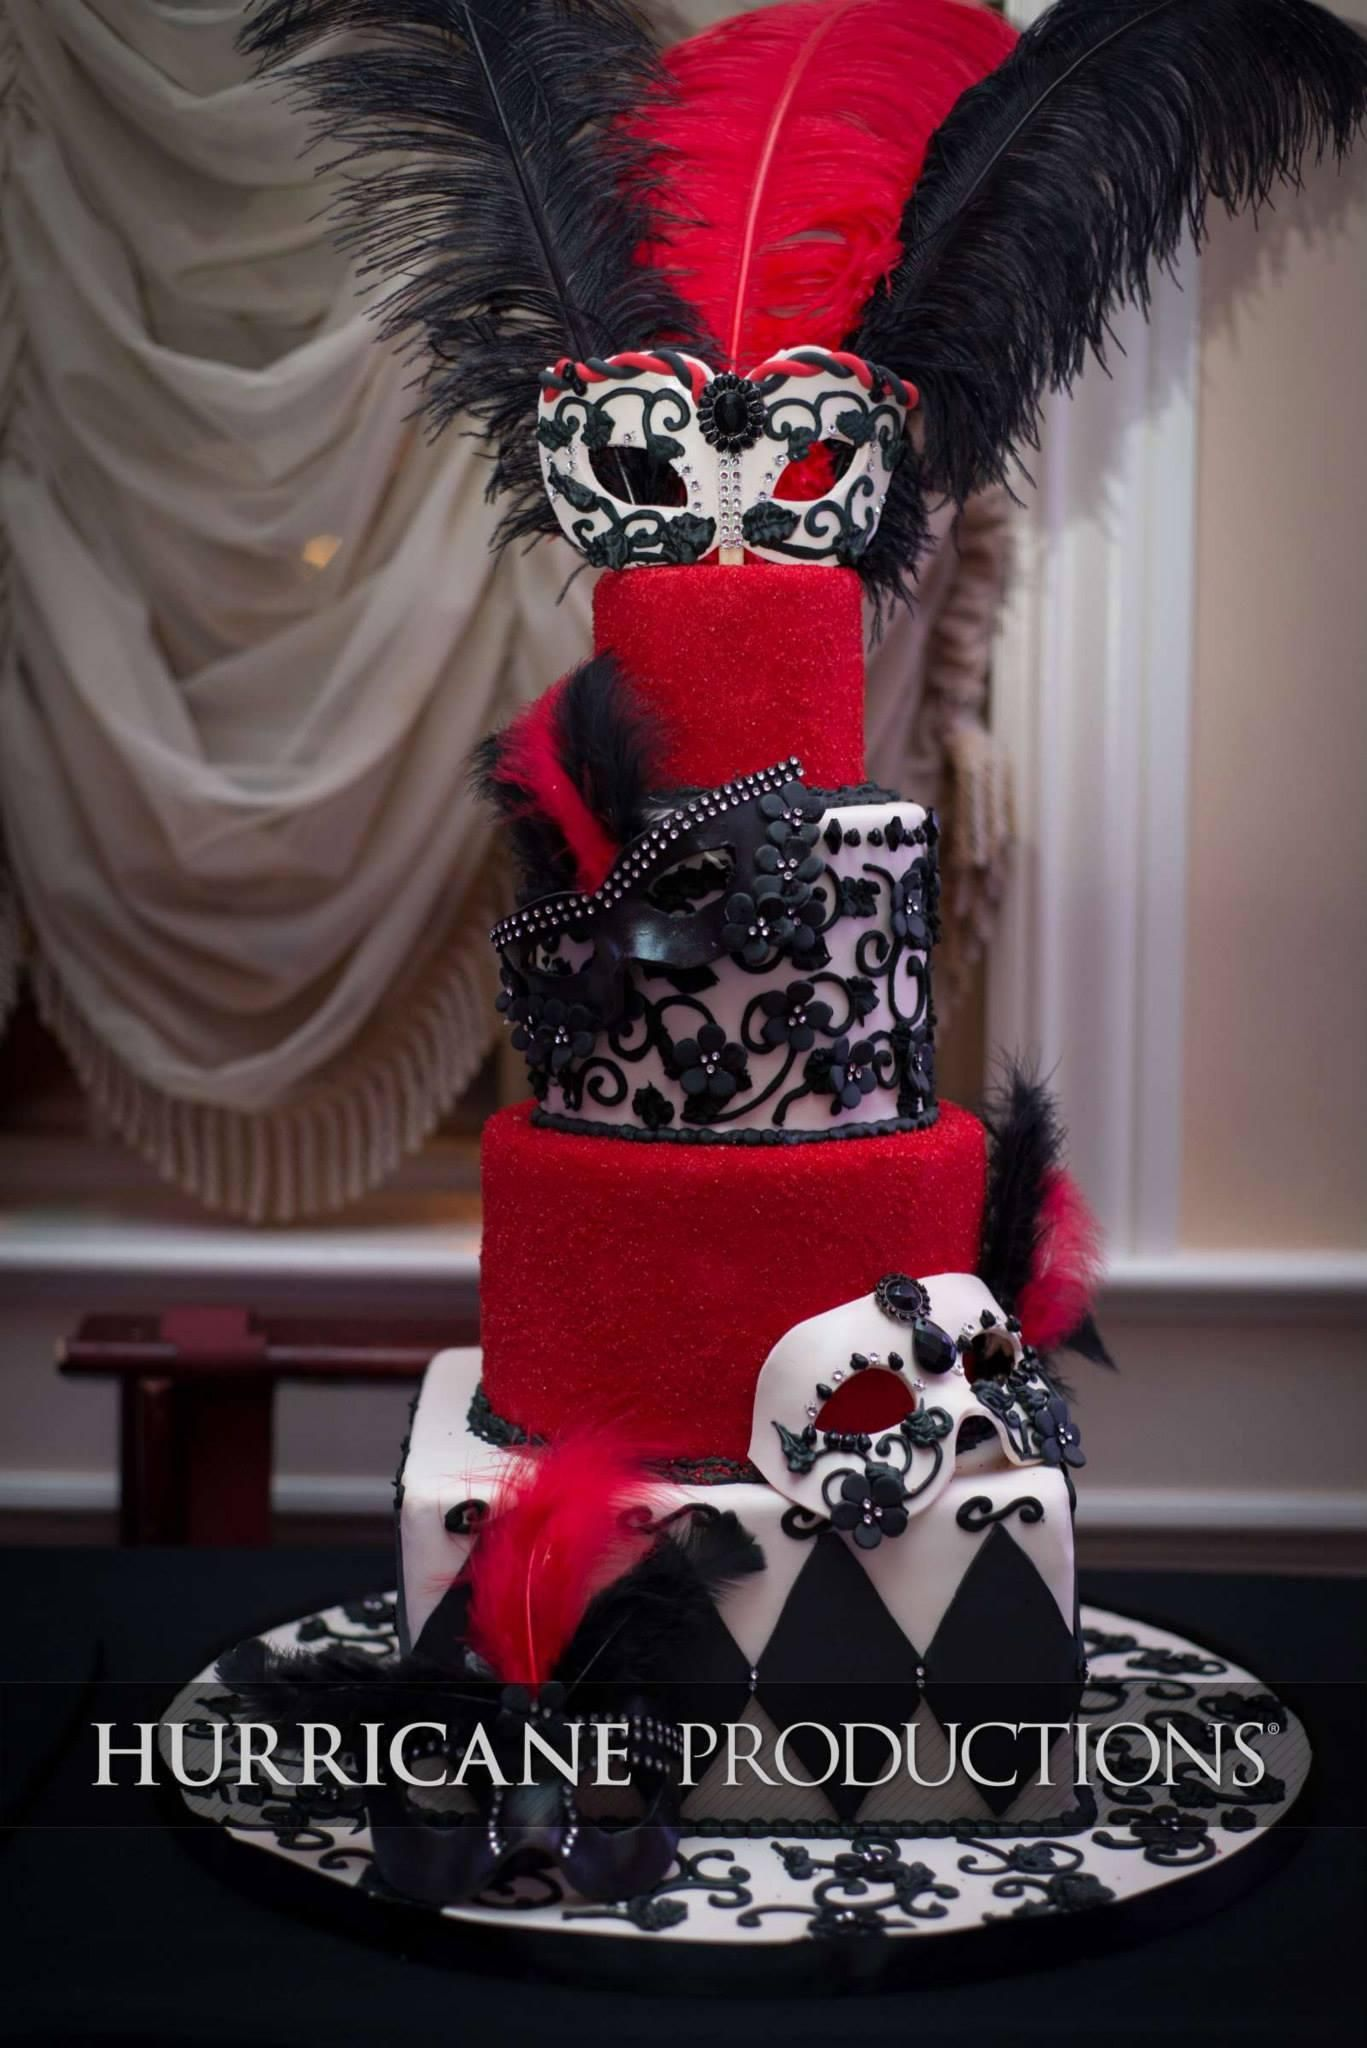 Black White And Red Masquerade Themed Cake With Feather